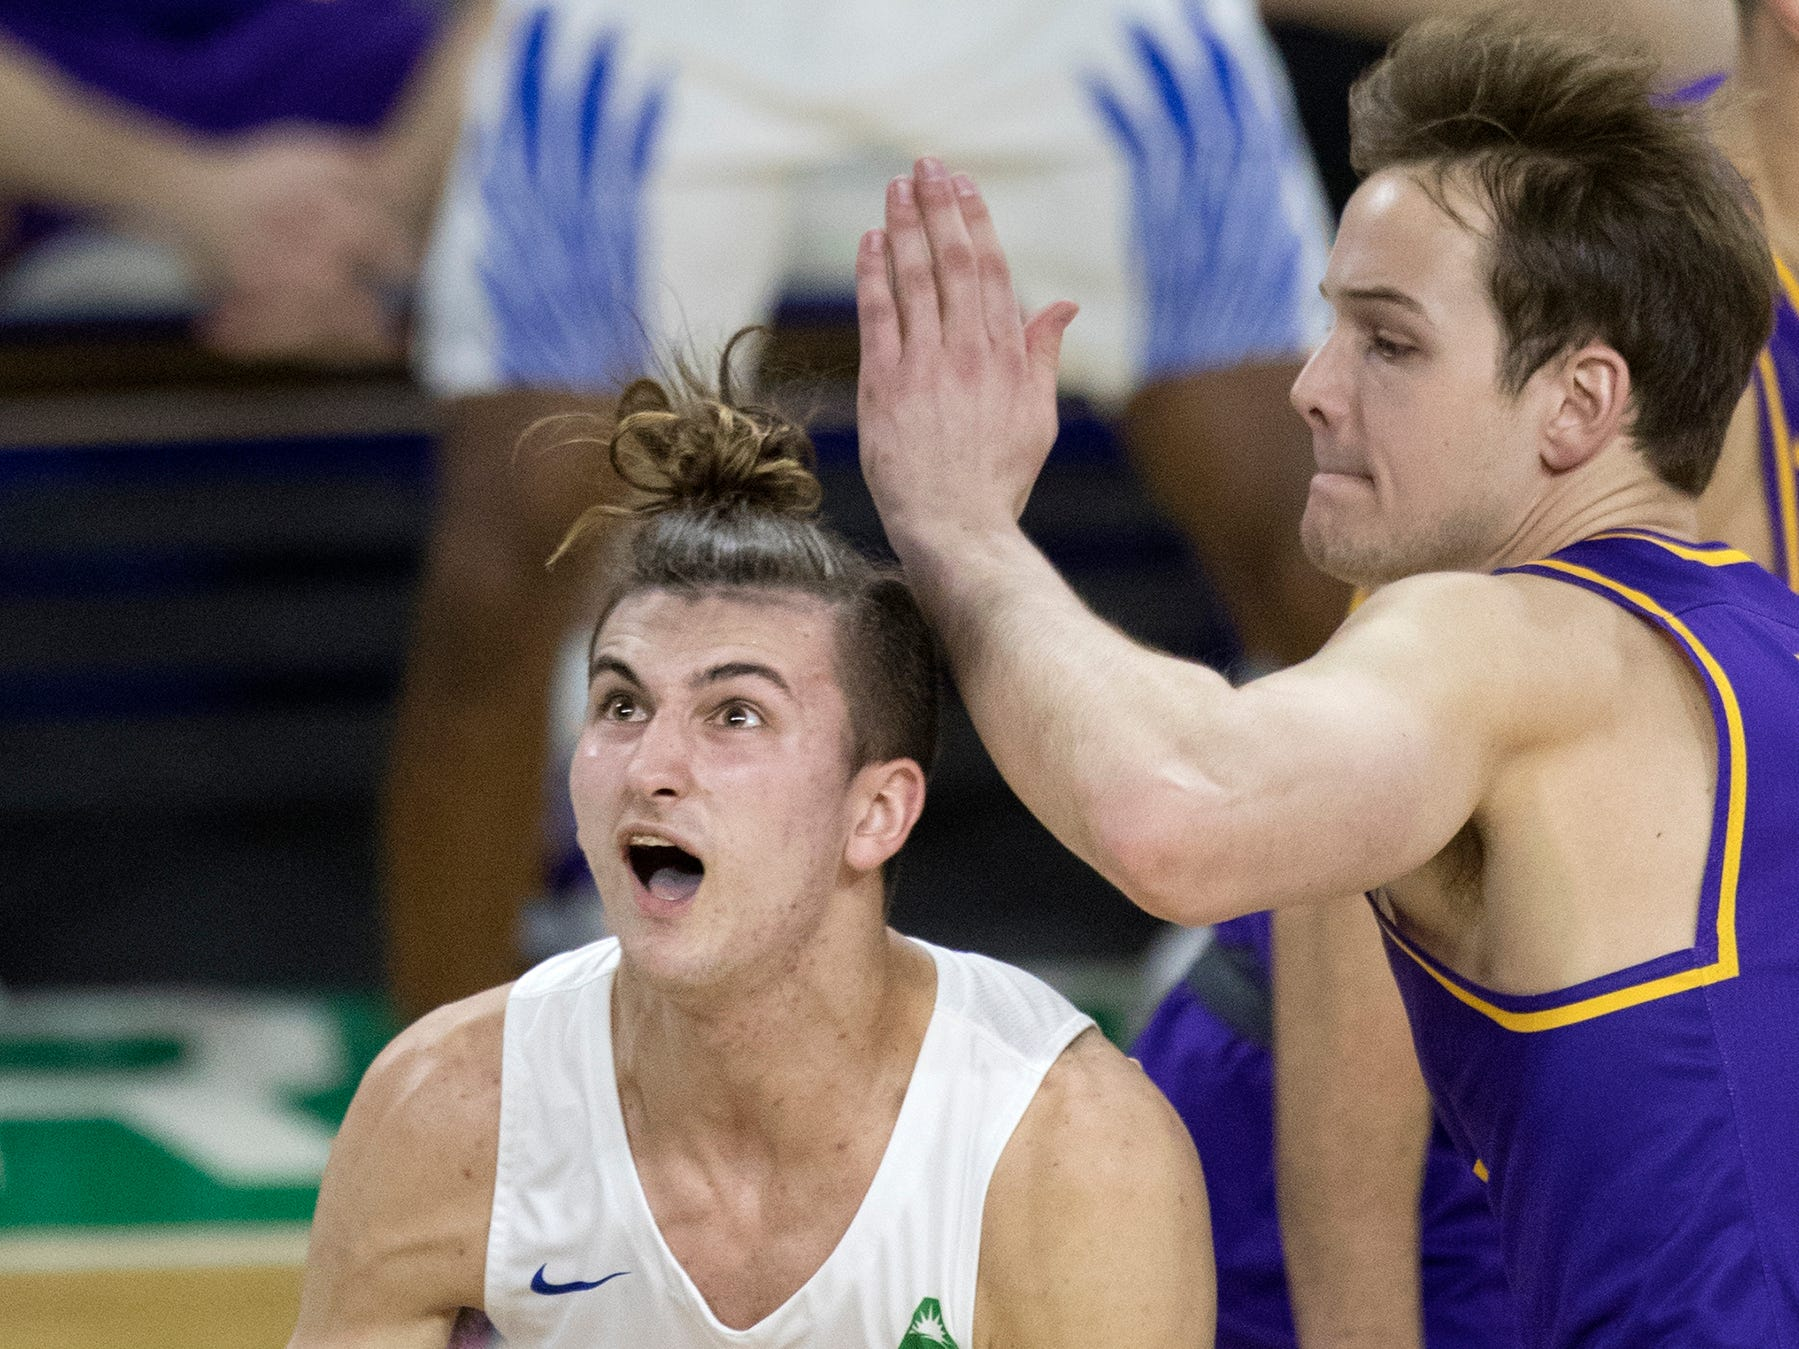 Florida Gulf Coast University's Caleb Catto drives to the basket against Lipscomb's Matt Rose on Wednesday at FGCU in Fort Myers. FGCU beat Lipscomb 67-61.